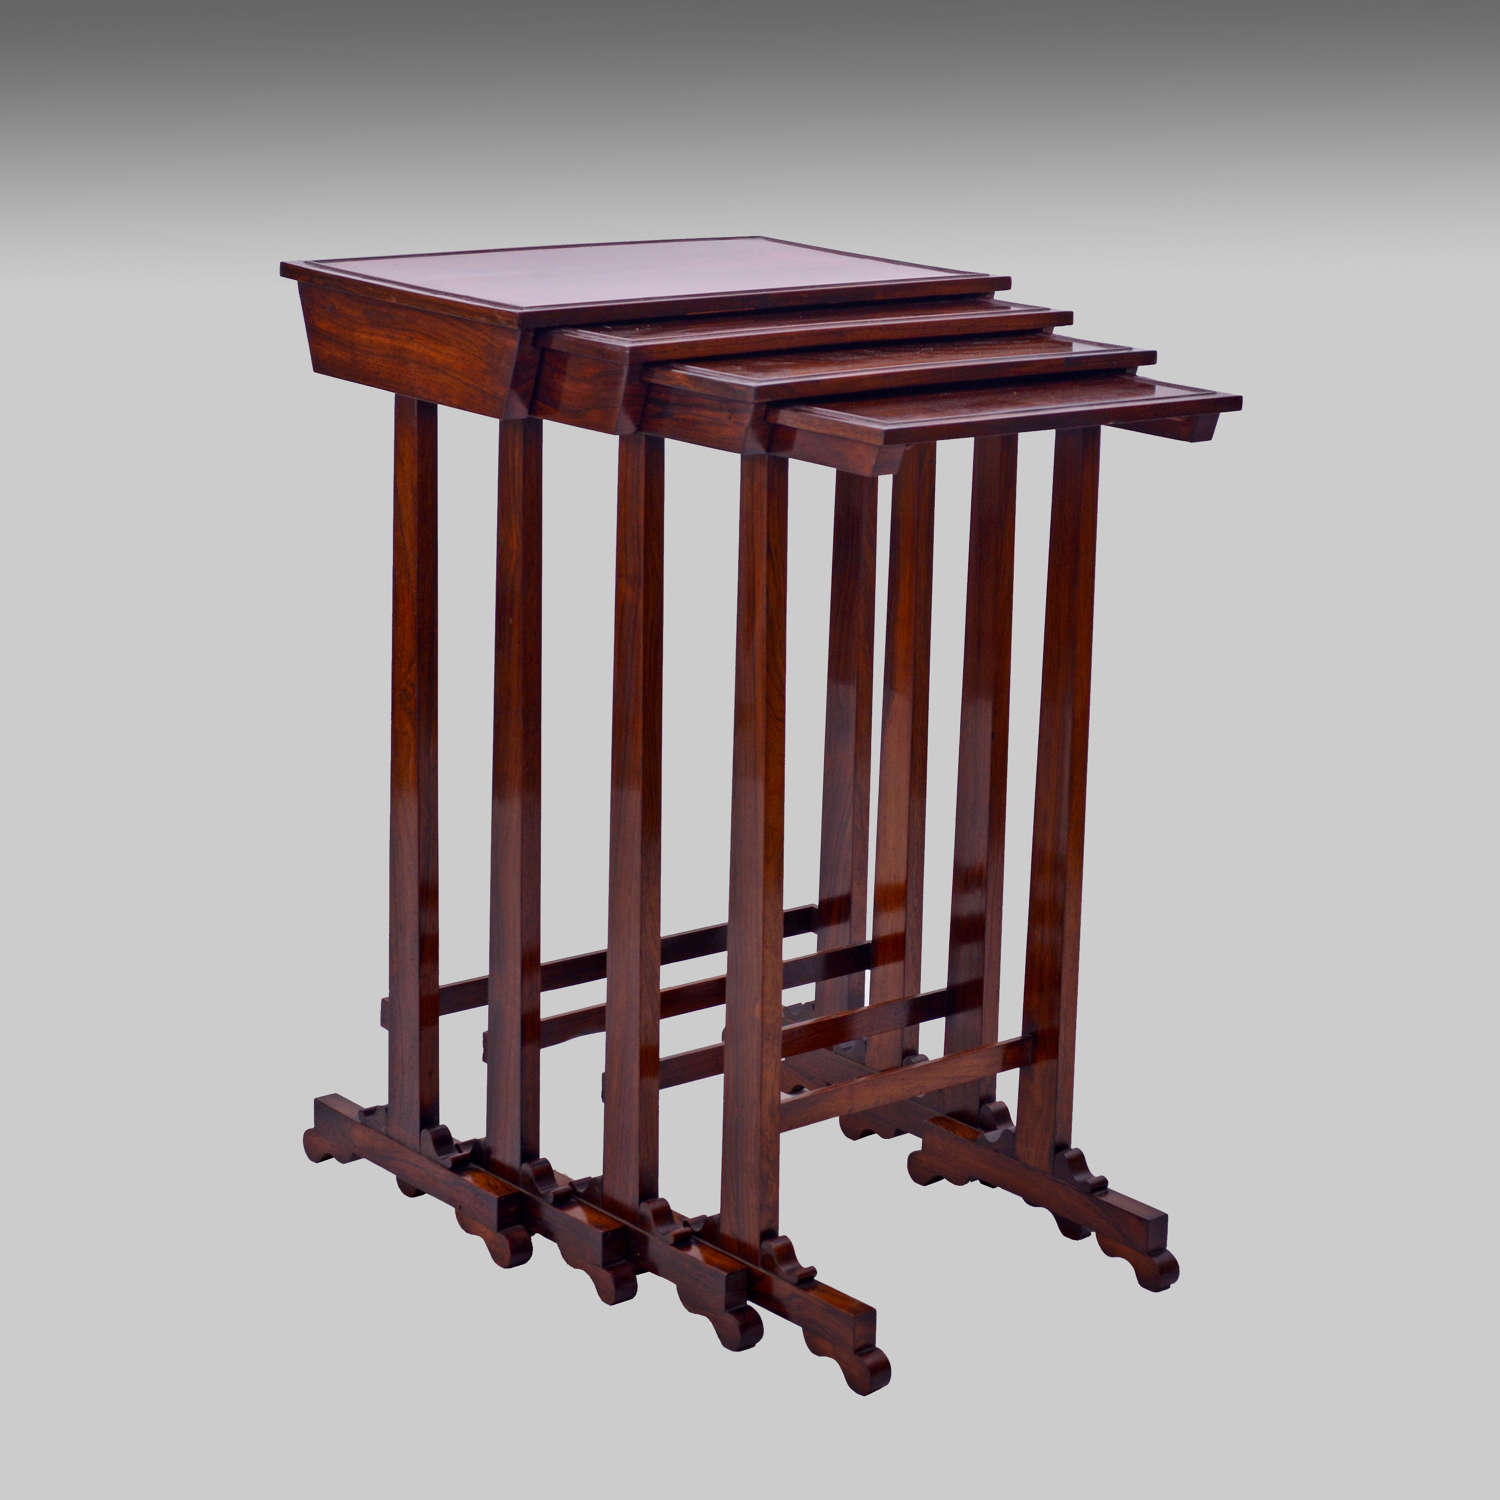 Regency rosewood quartetto tables